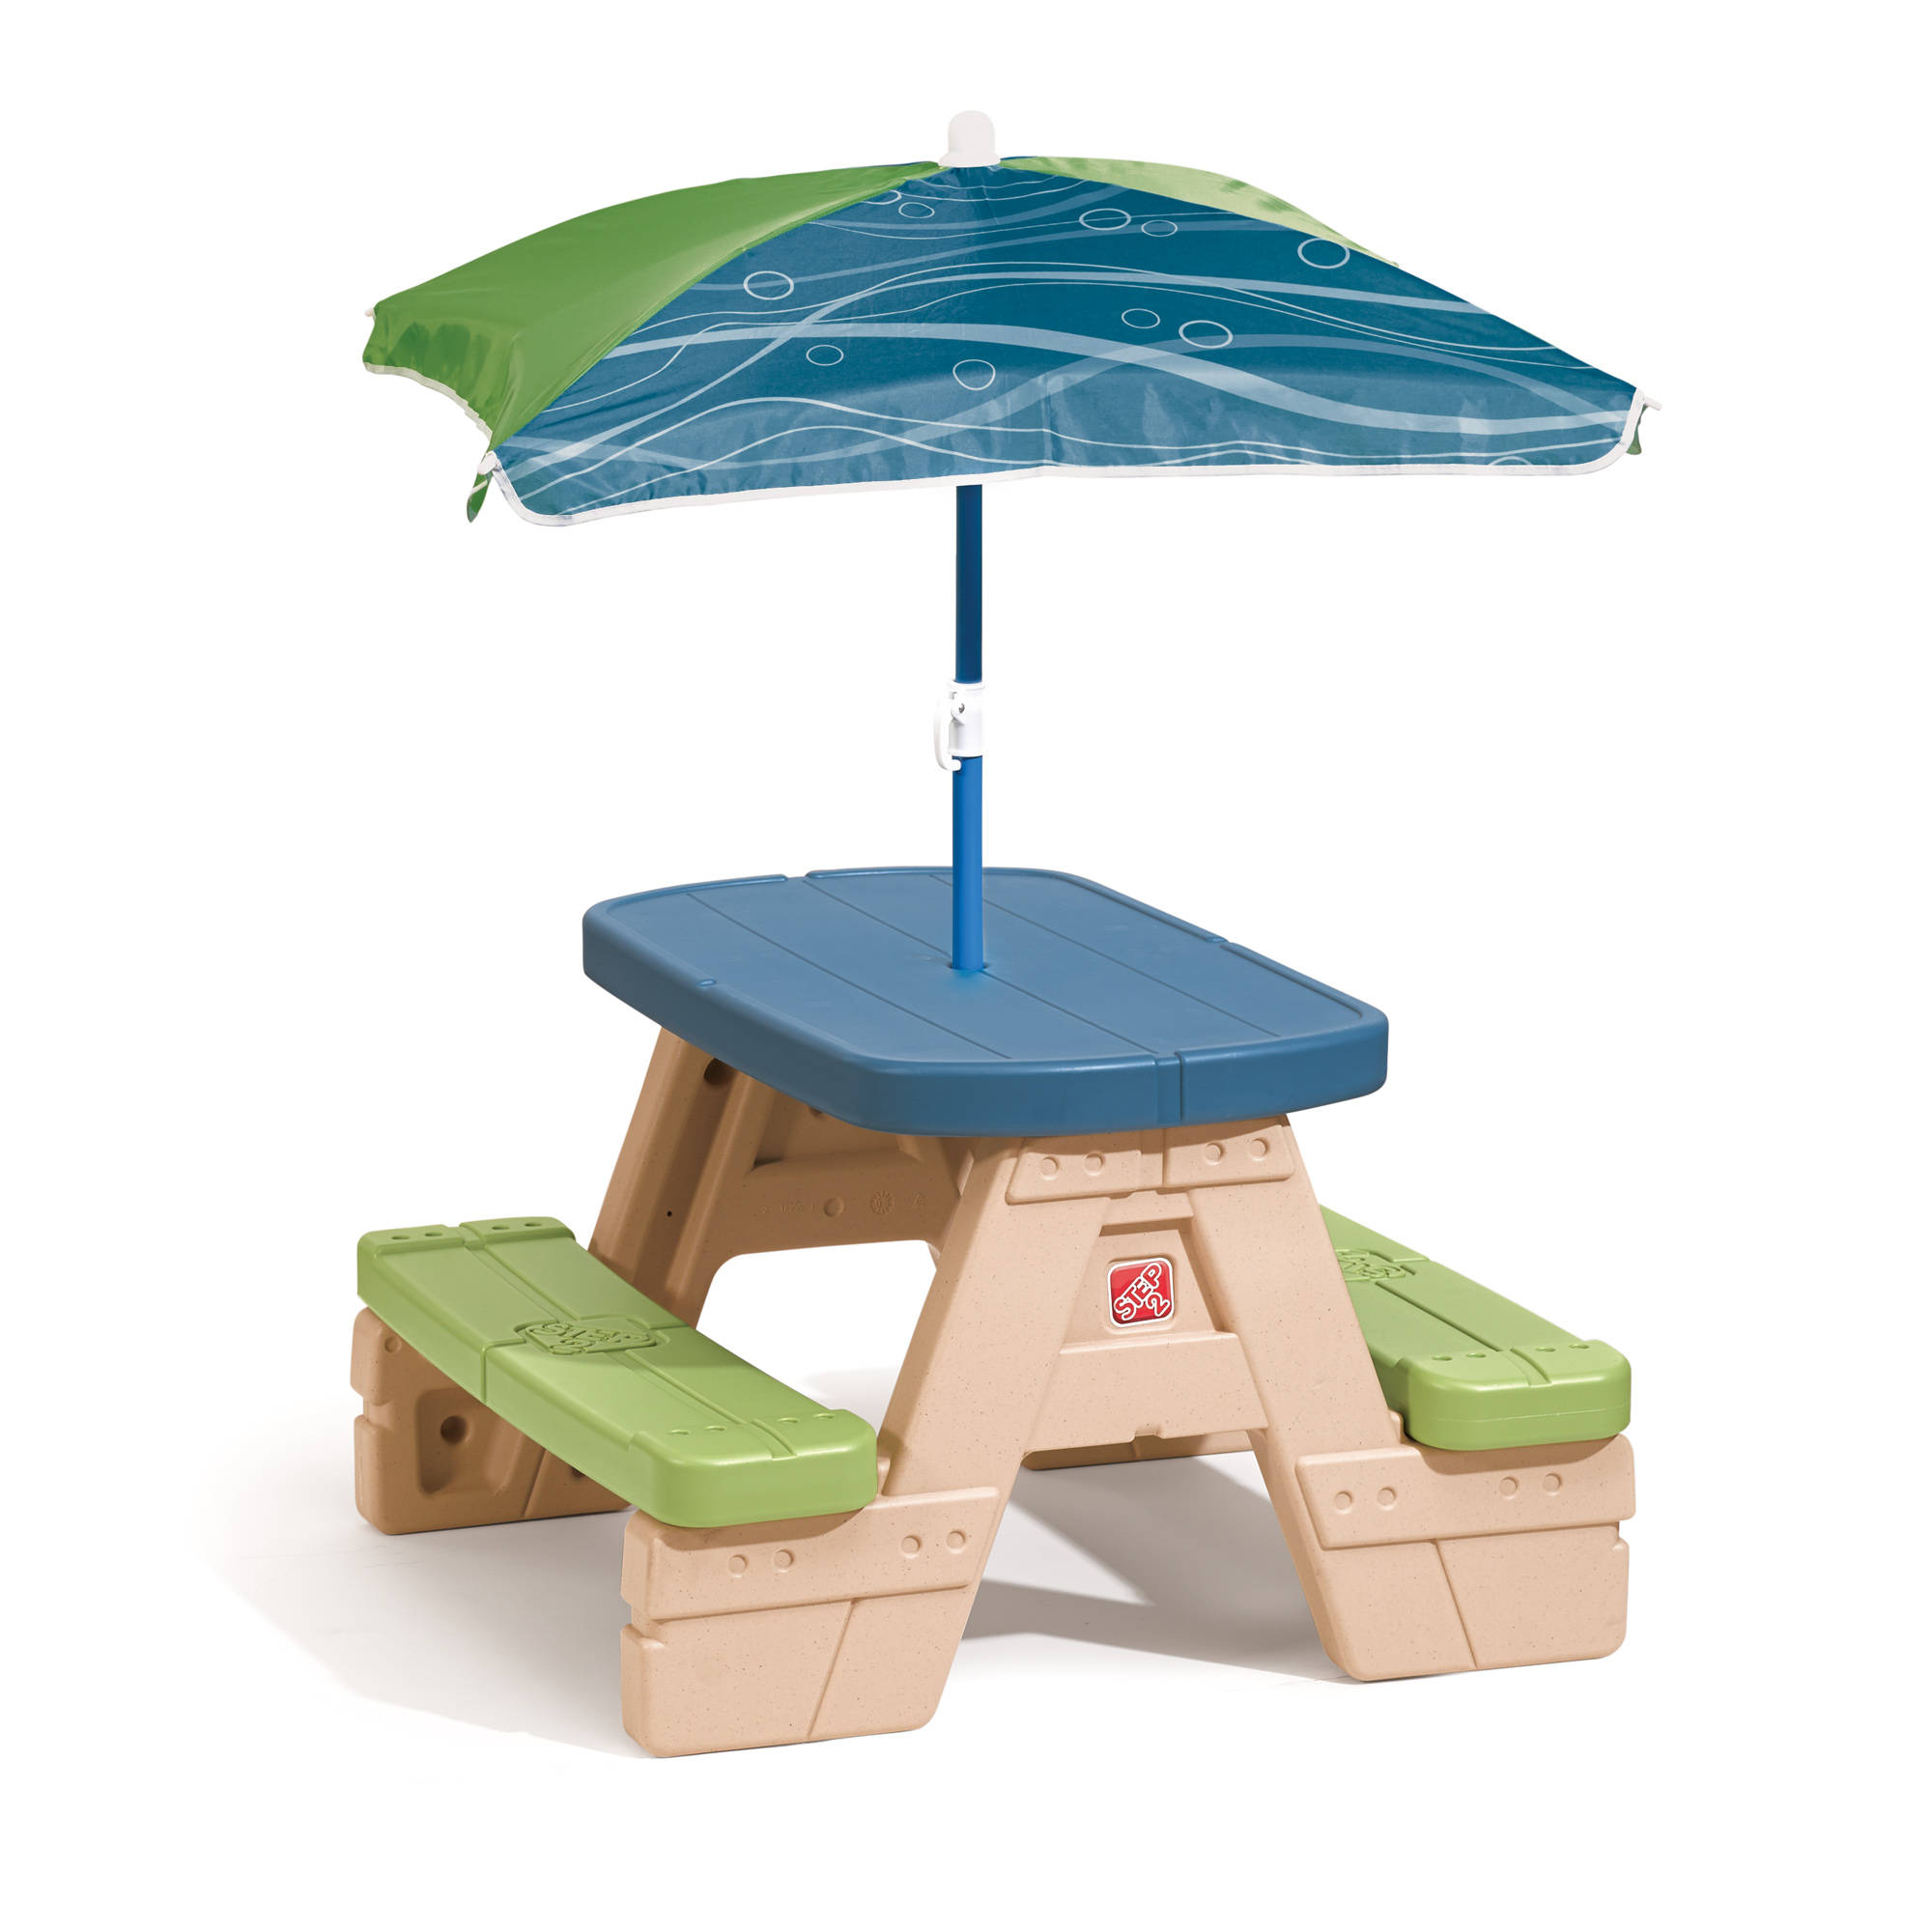 picnic item patio bigfootglobal kiz wooden kidz children table furniture kidpicnictable zone s kids for